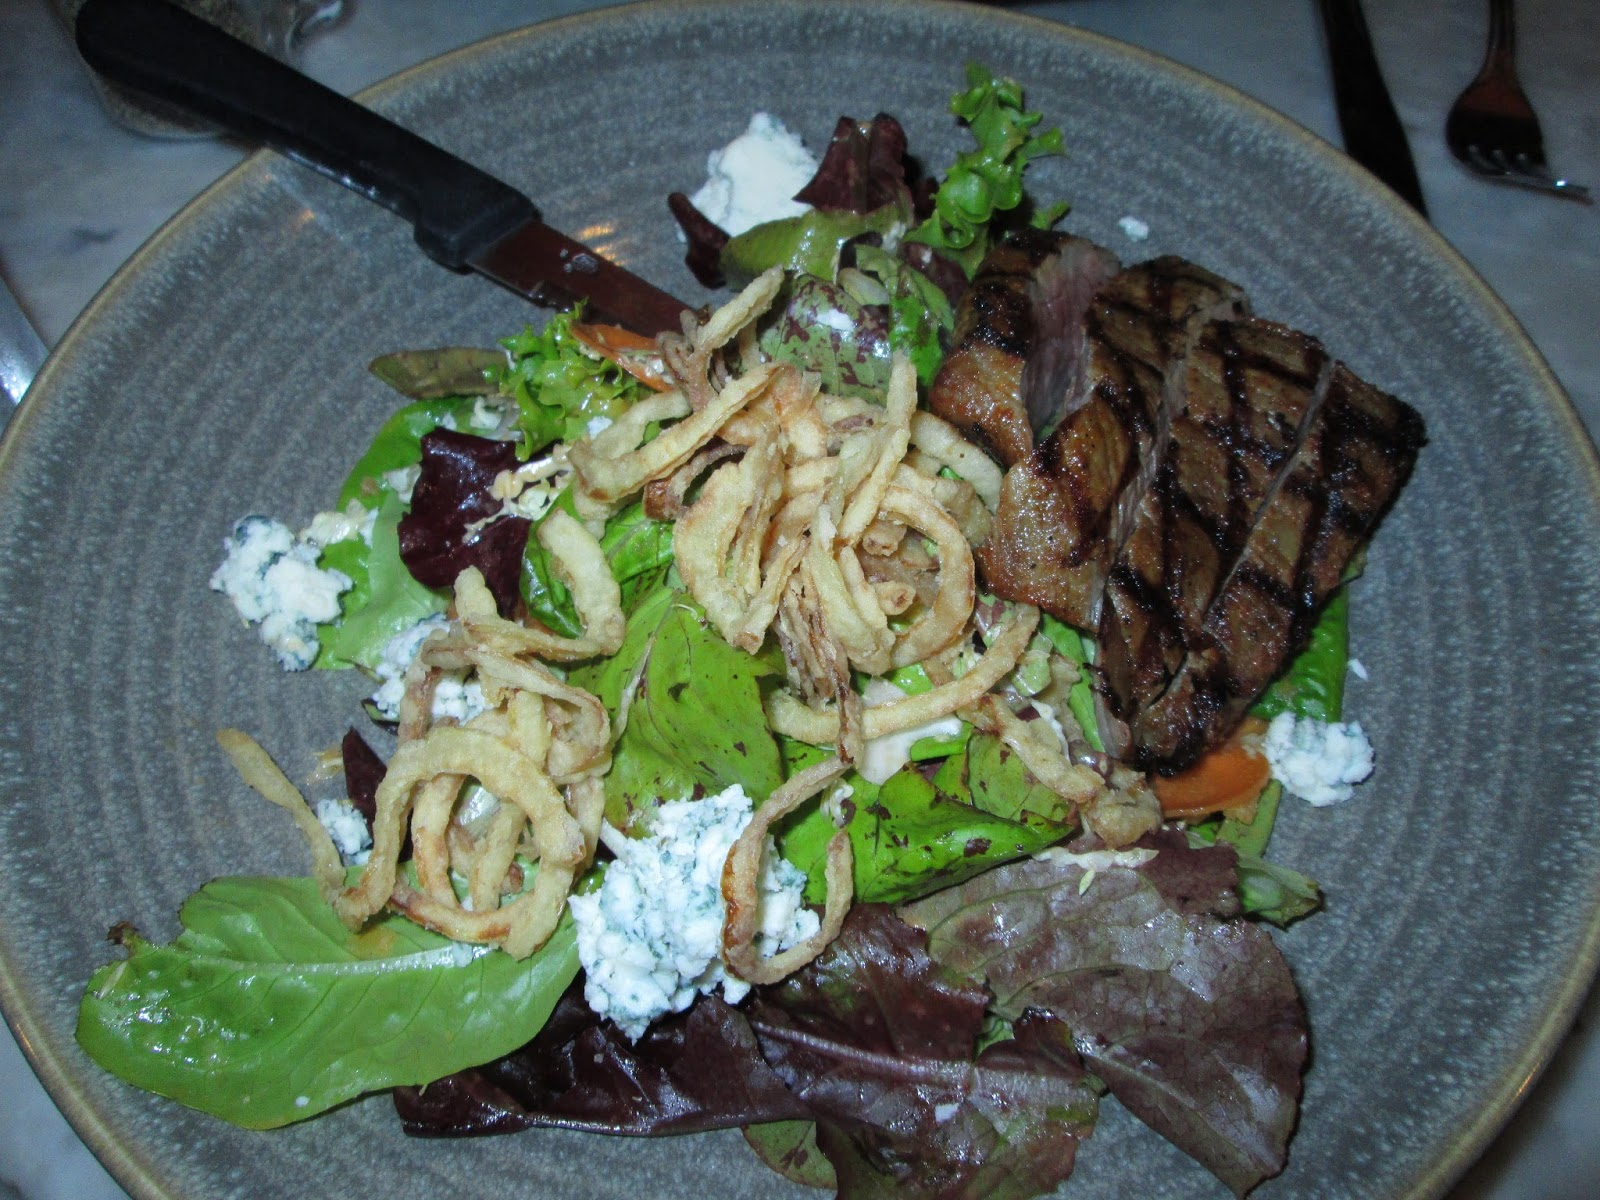 bcd8dd09c9e5 Above and below are salads at Station House Cafe